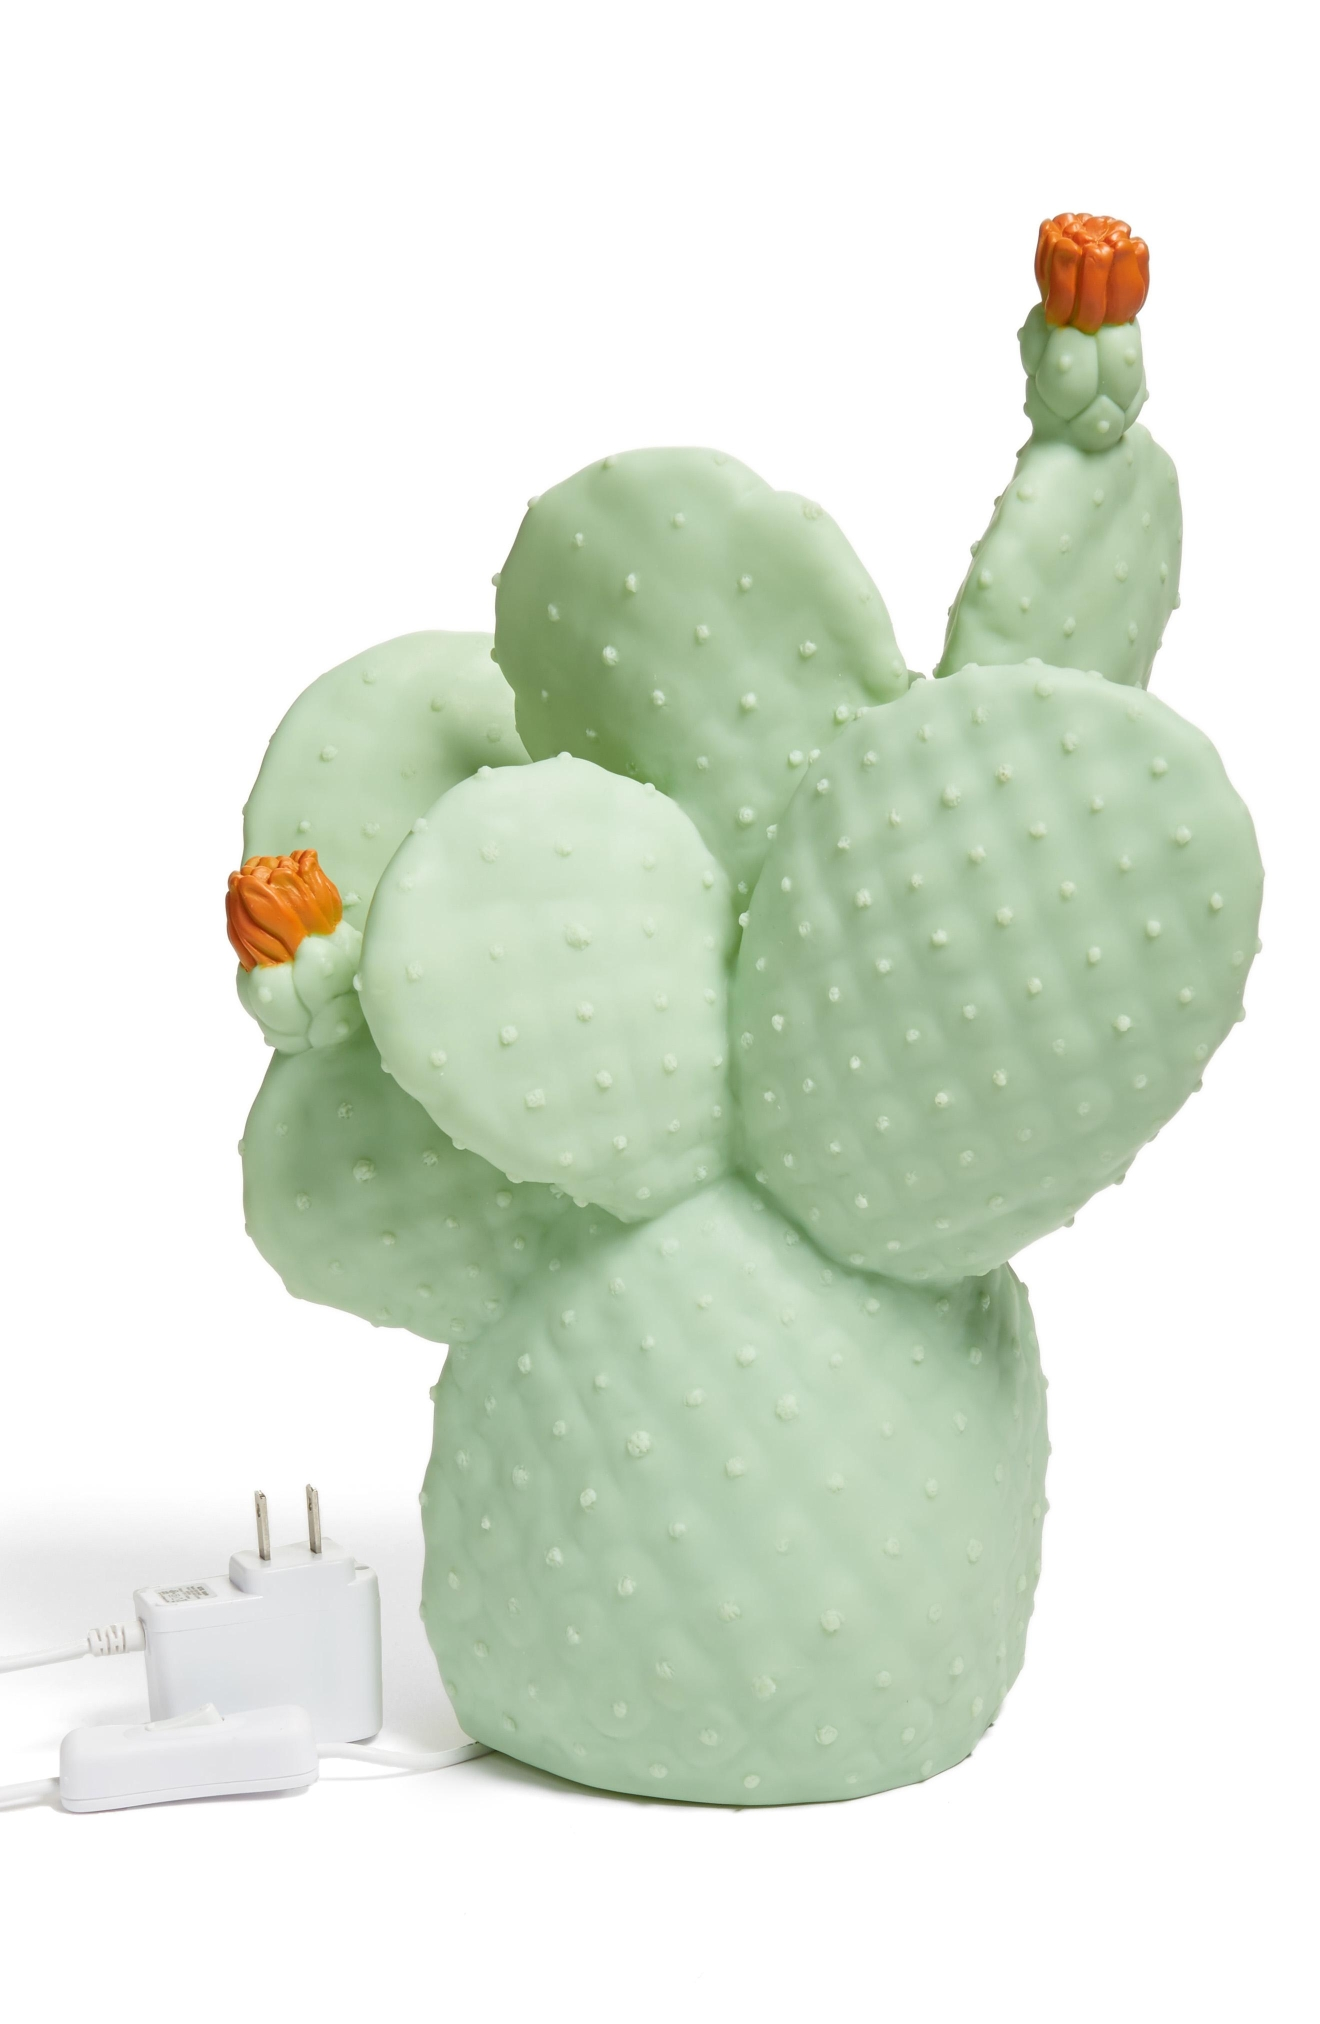 Goodnight Light Cactus Lamp - $110. Buy at shop.nordstrom.com/c/pop-in-olivia-kim (Image: Nordstrom)